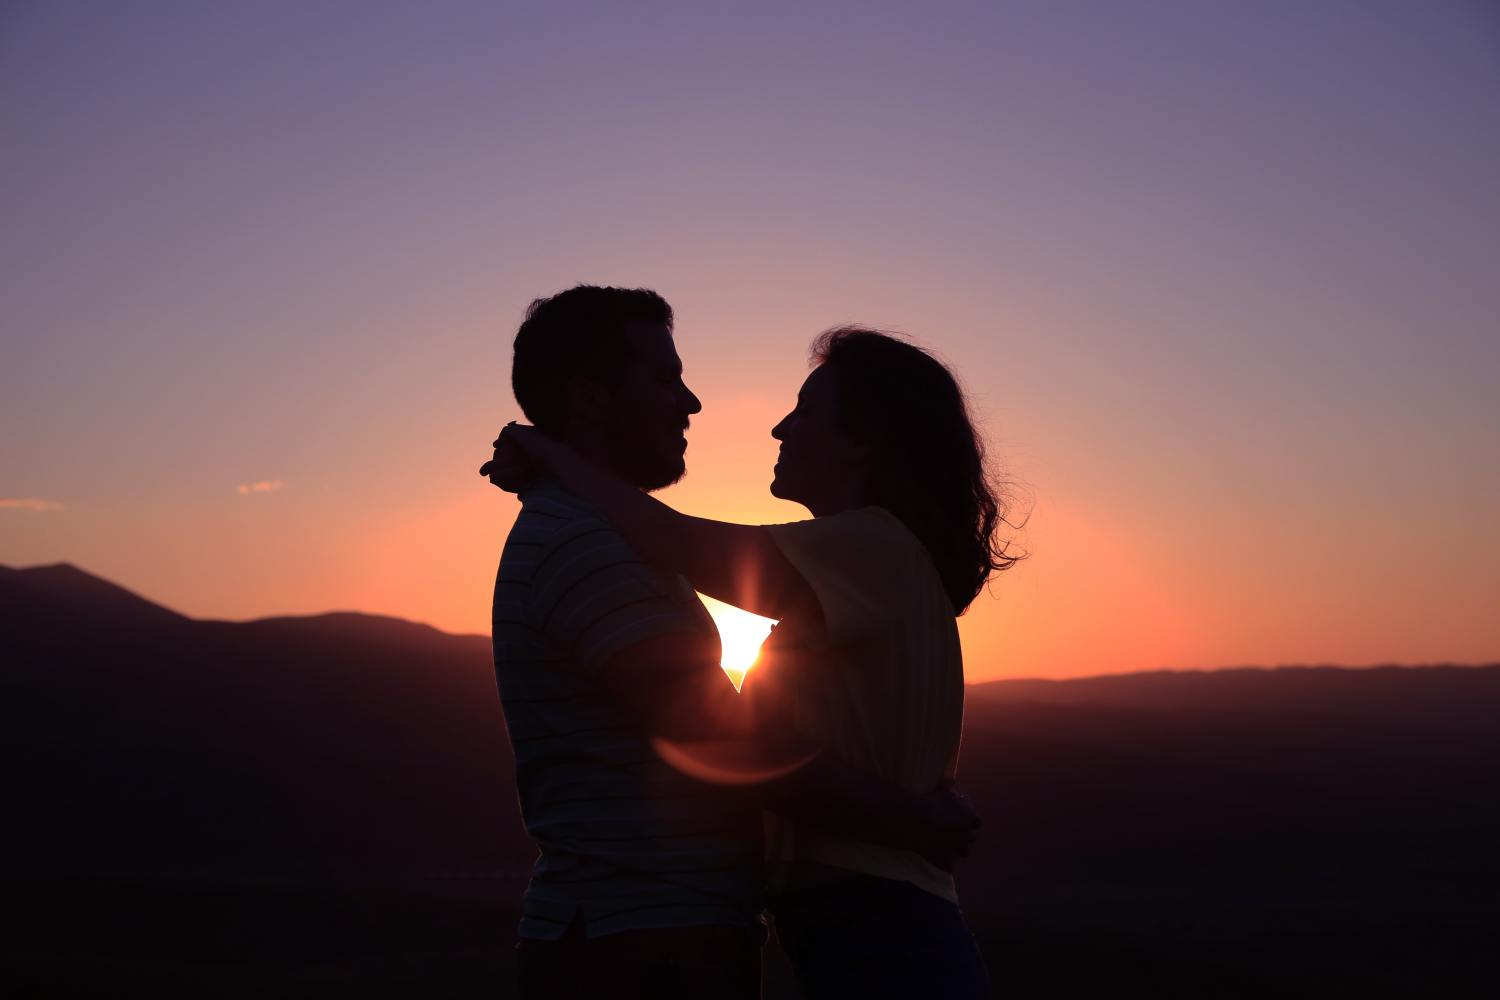 Men's Fear Of Intimacy Symptoms: Anger, Isolation, Low Self-Esteem, And Heightened Sexual Desire